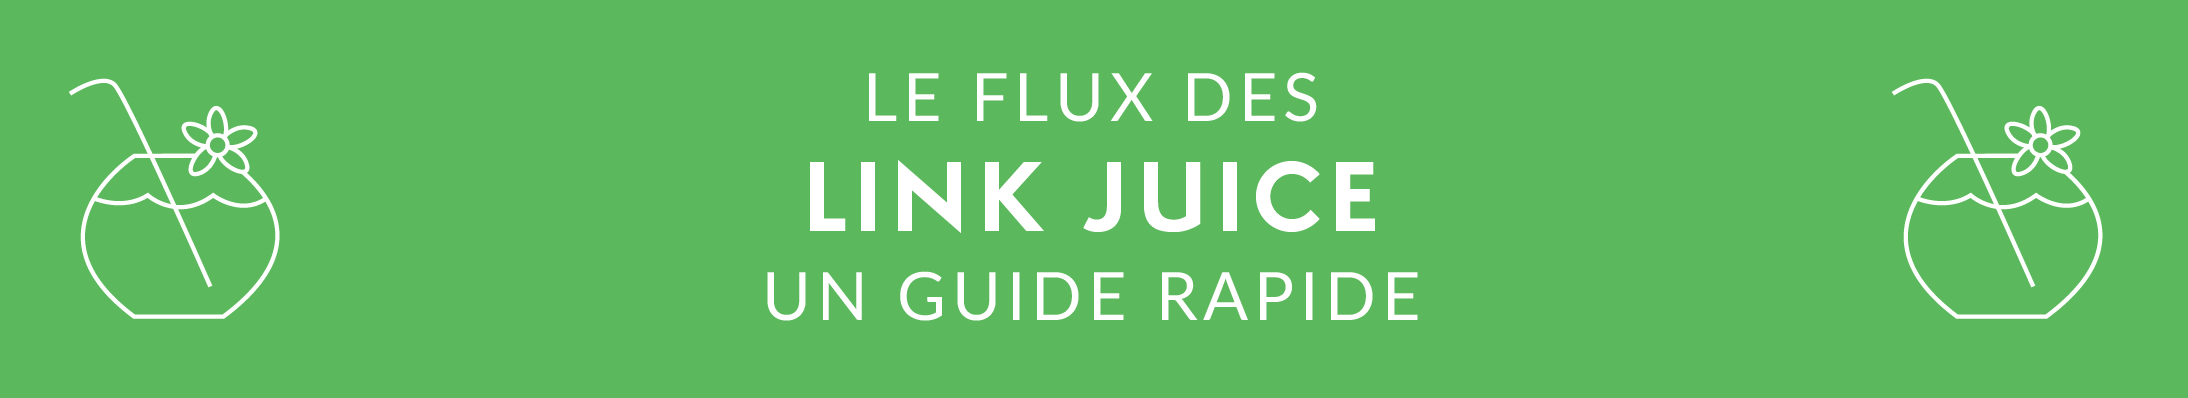 FR - SEO GUIDE - Link Juice